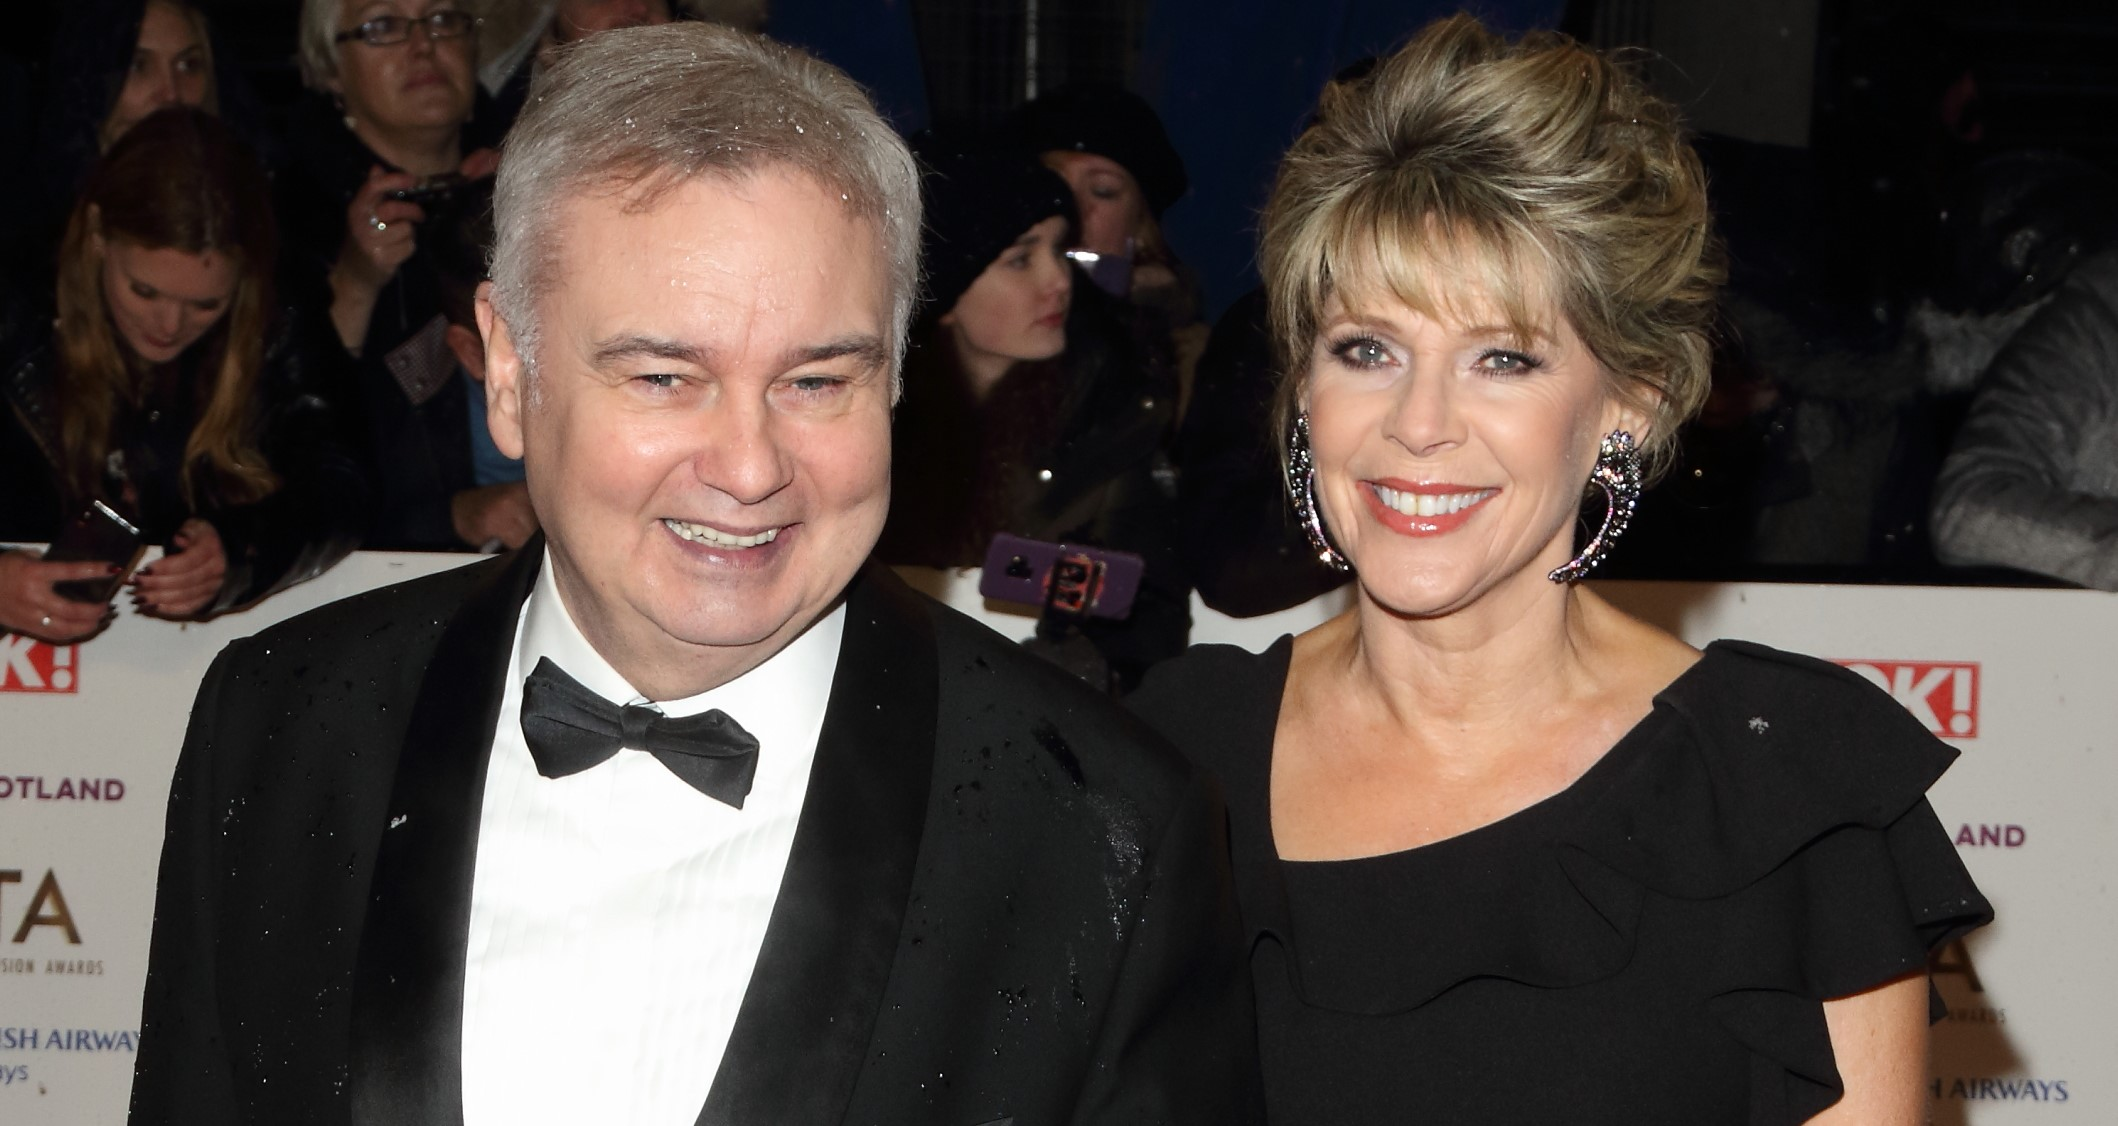 Eamonn Holmes sends emotional message to fans after death of Ruth Langsford's sister